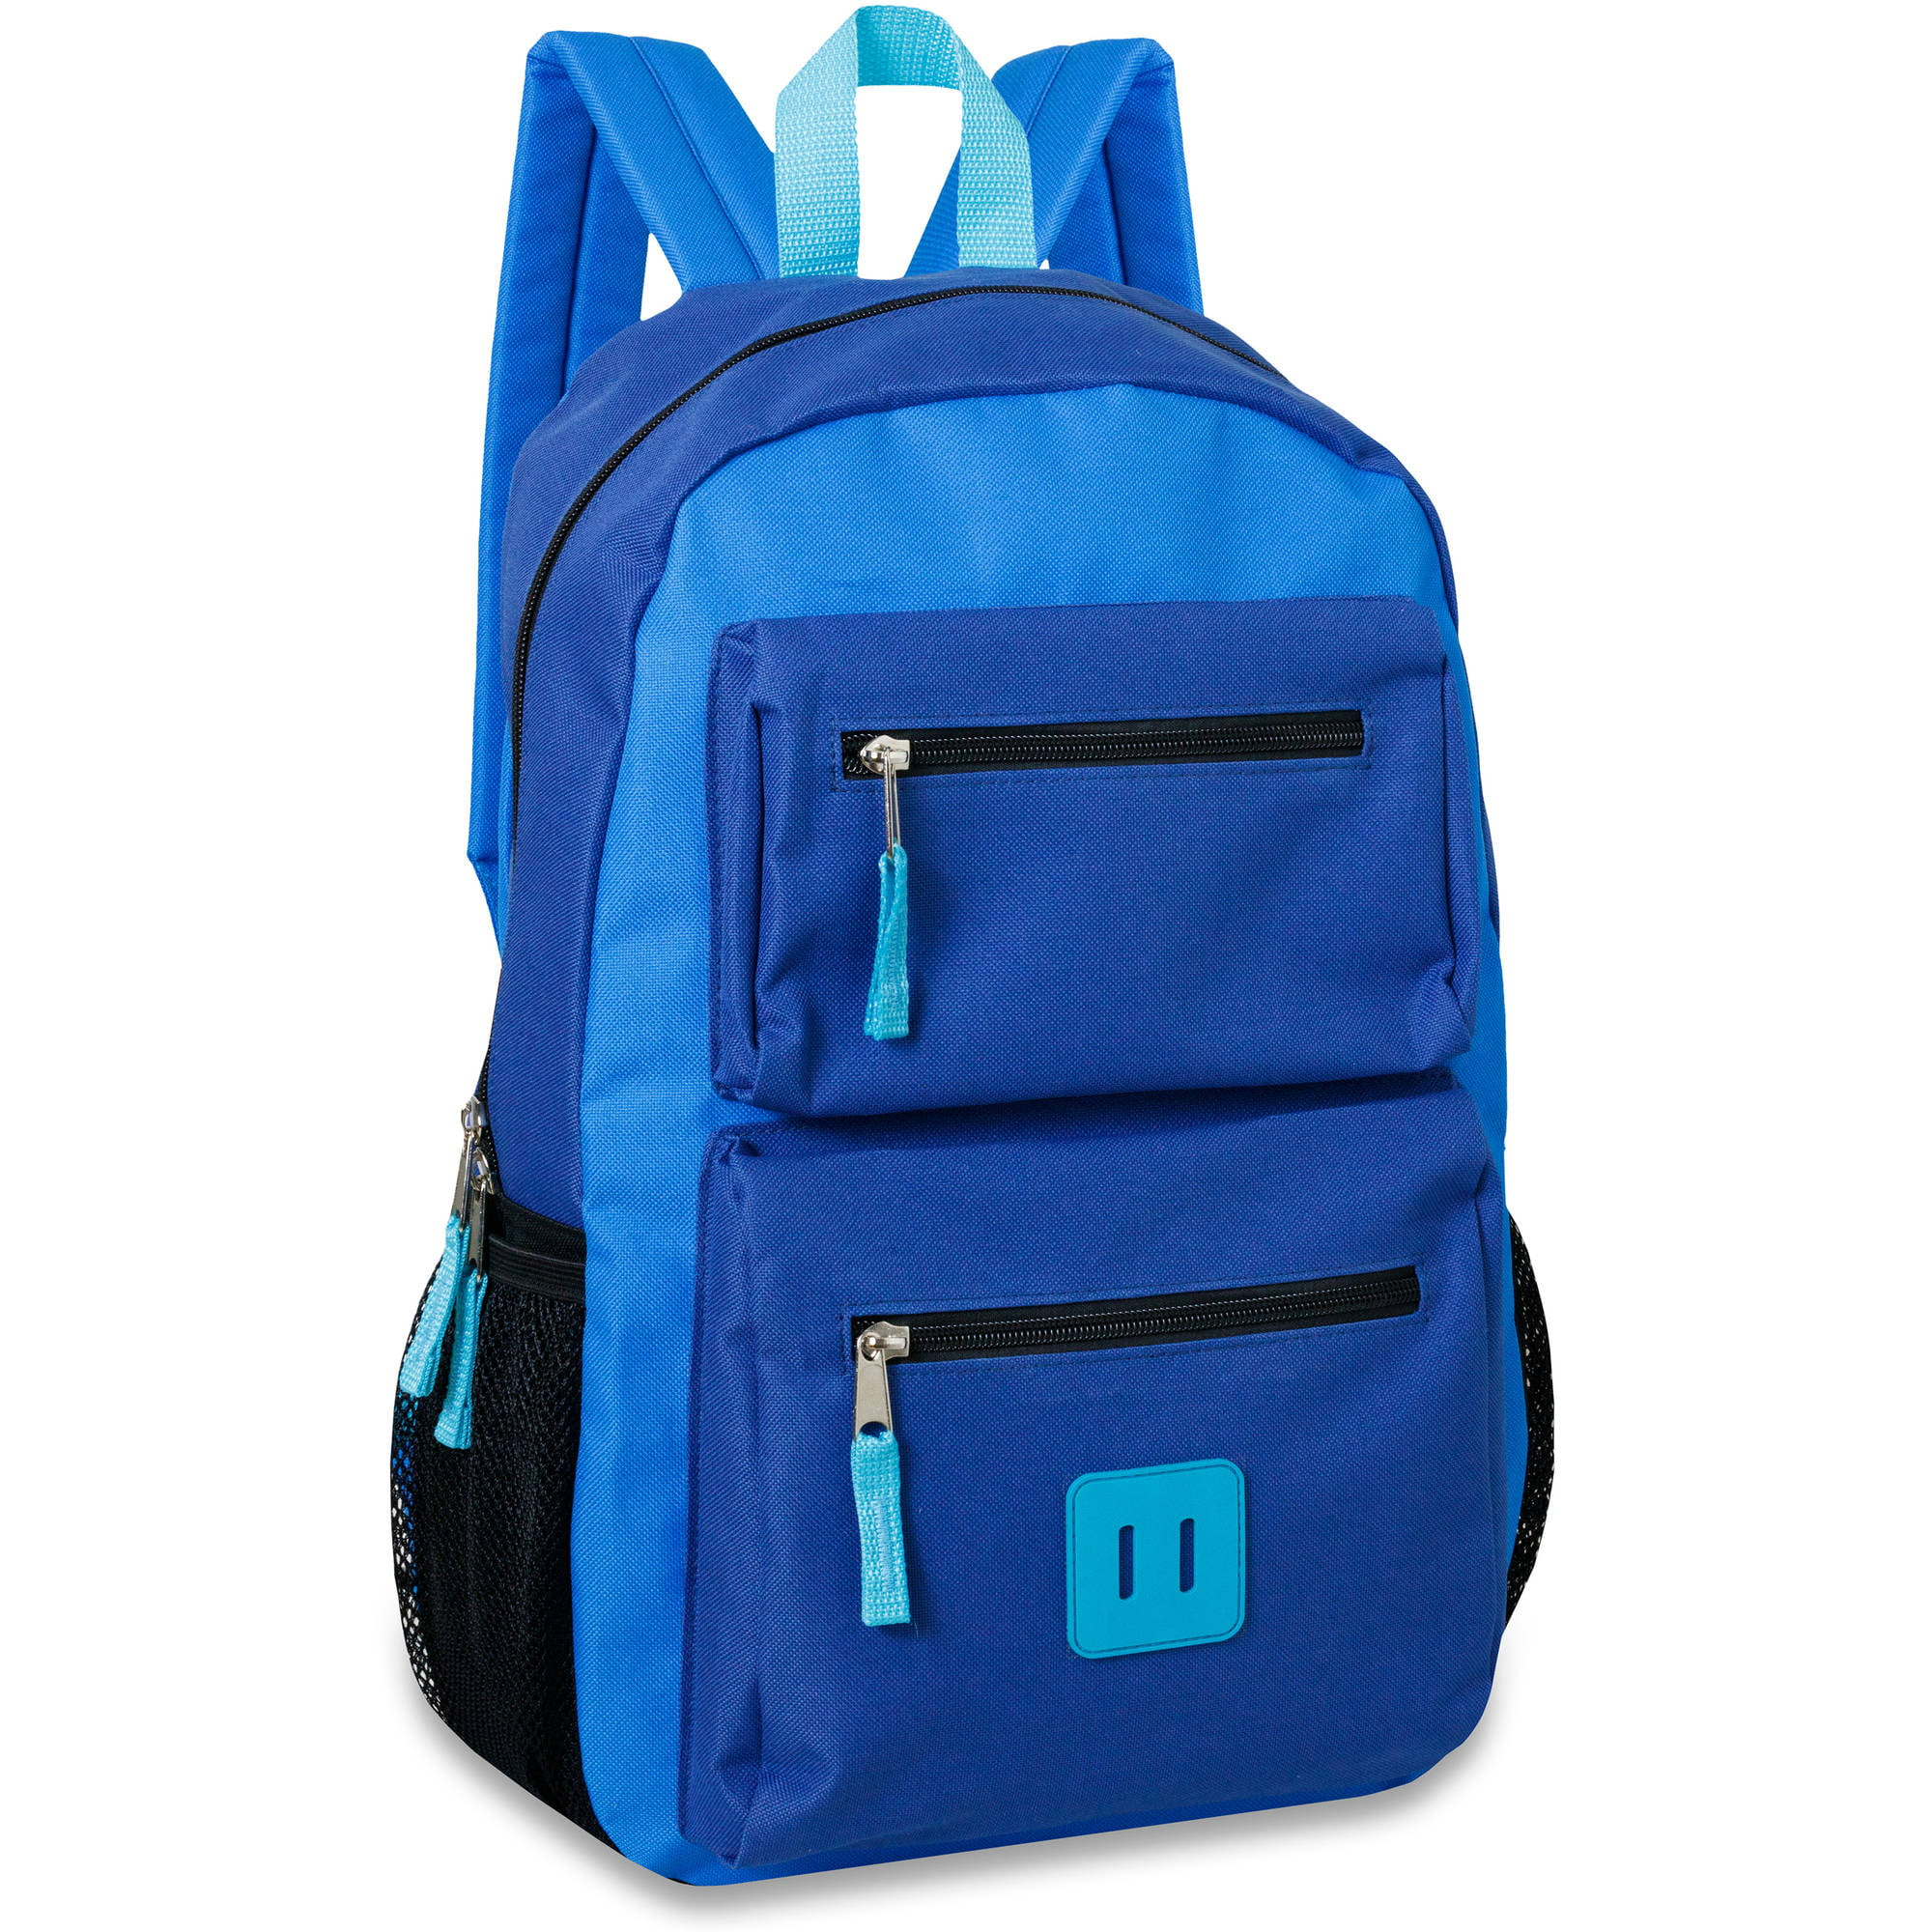 18 inch double pocket backpack walmart